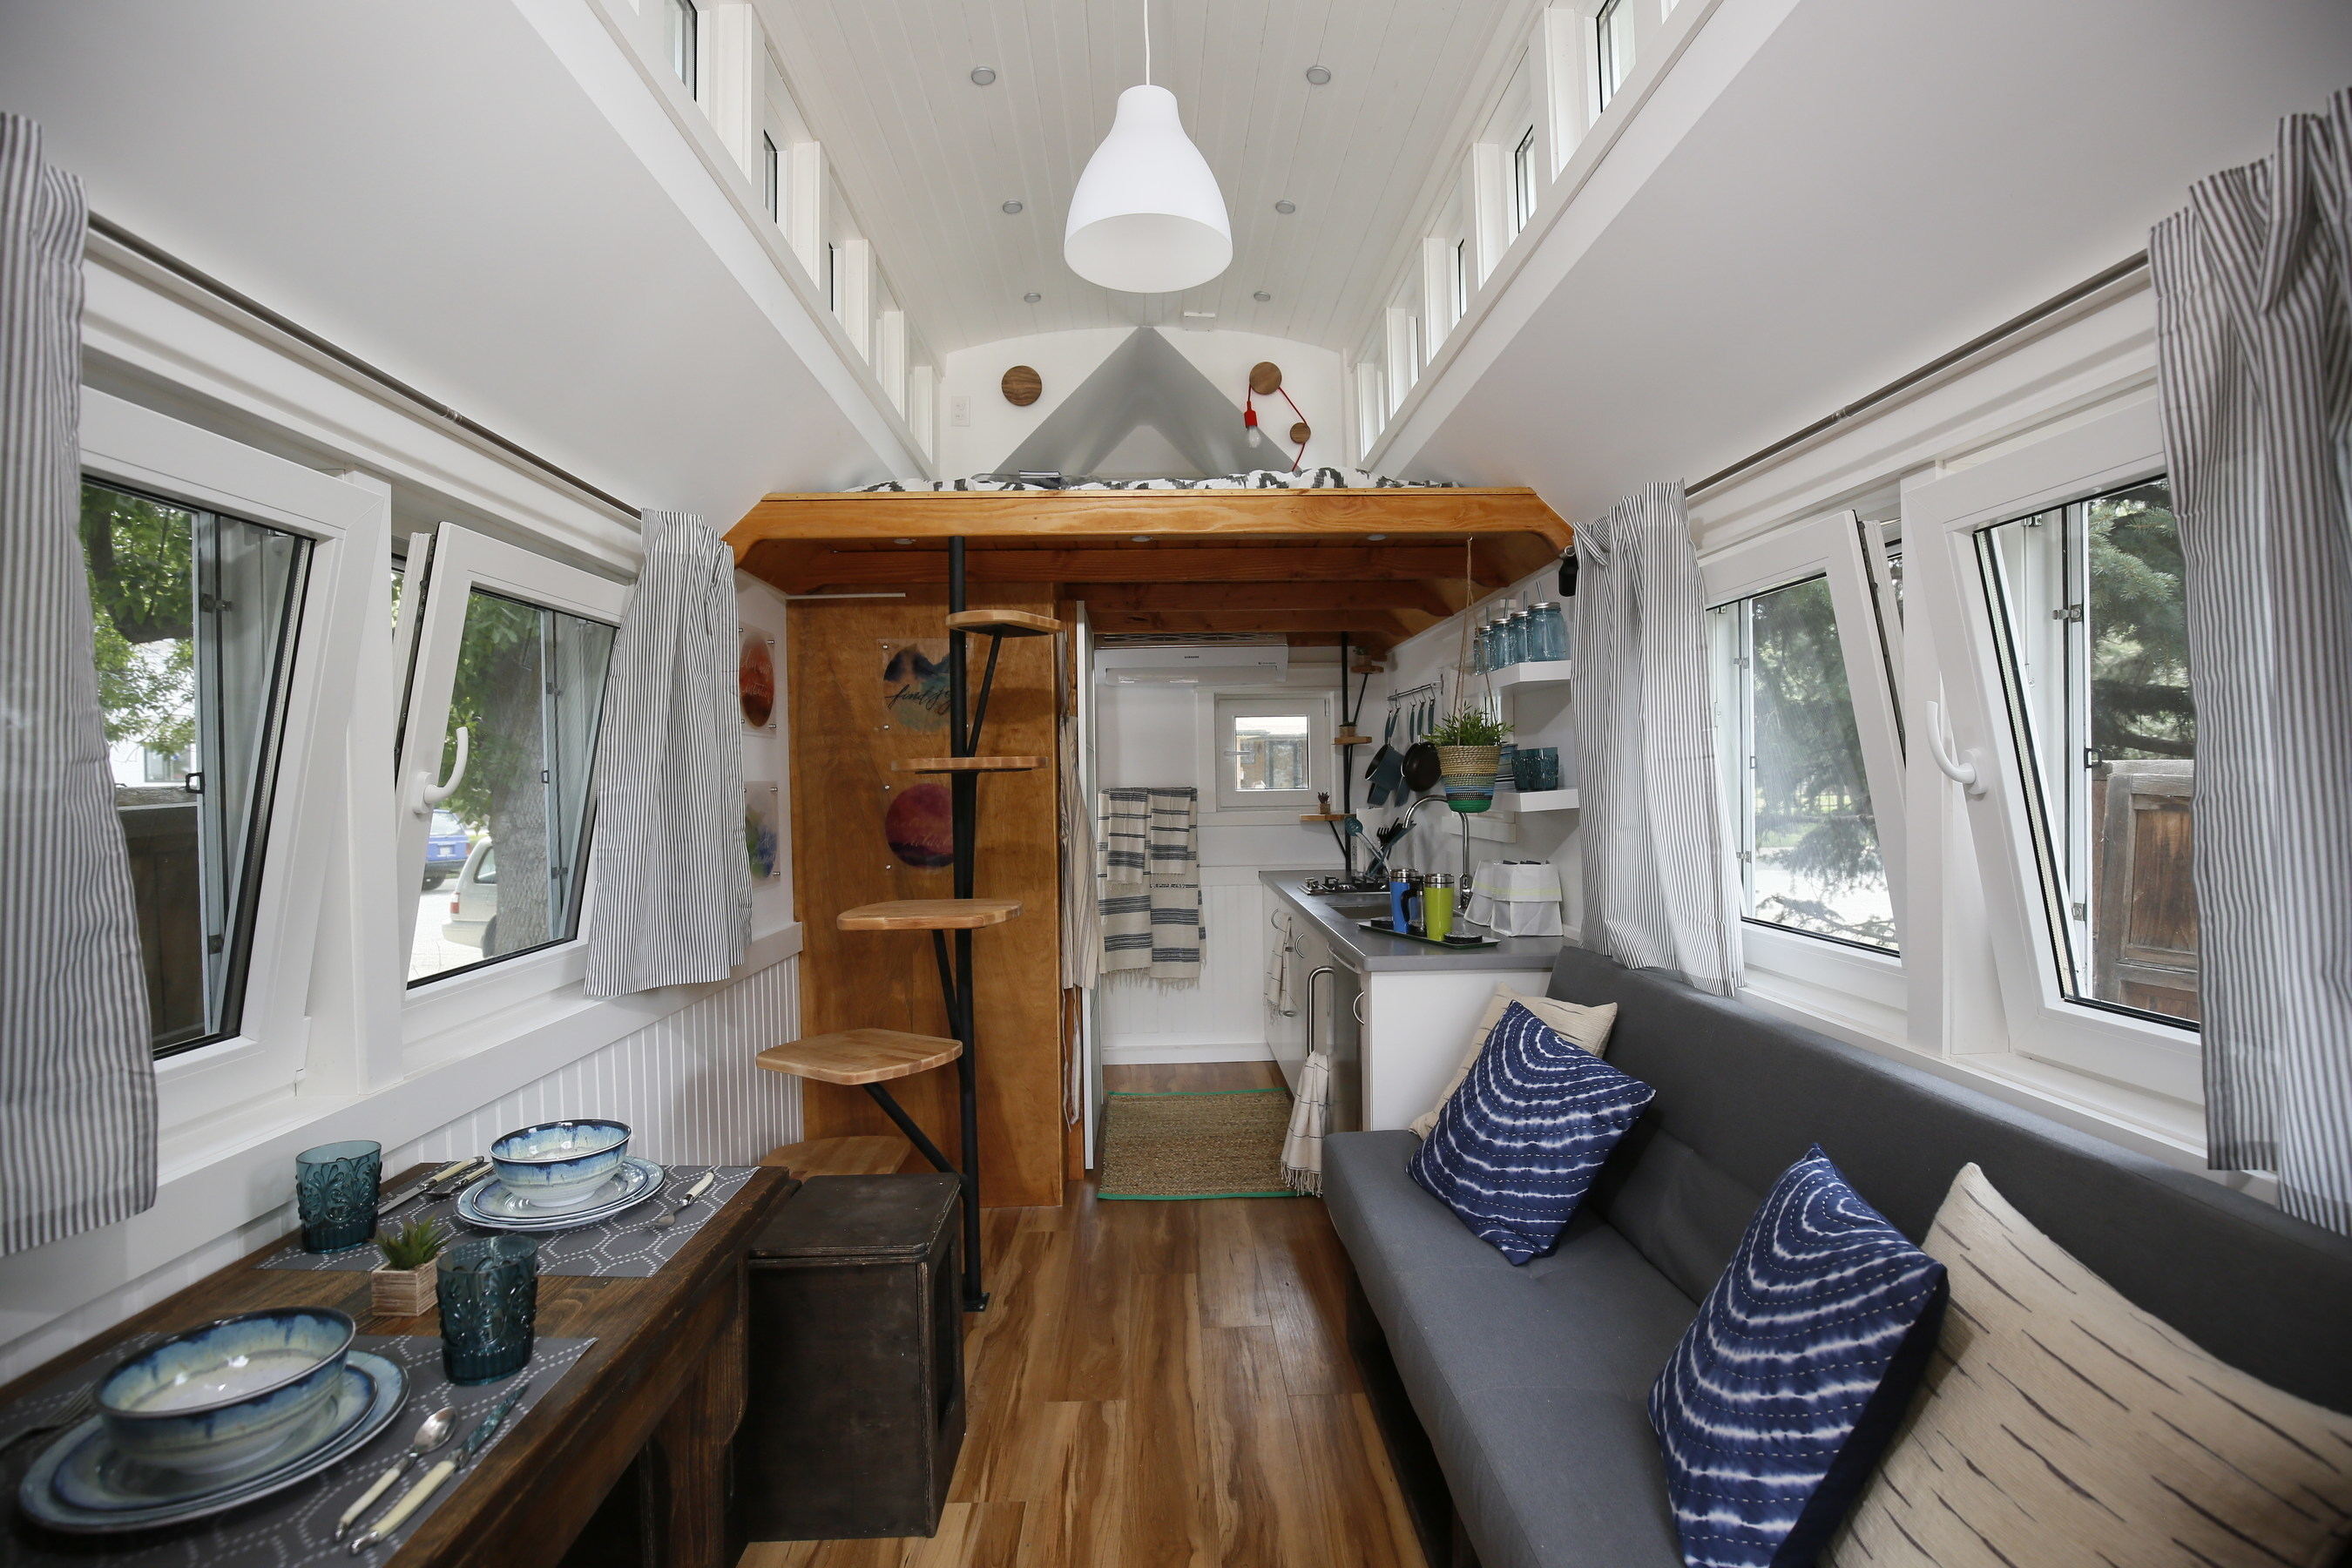 Rthid50 Remarkable Tiny House Interior Design Wtsenates